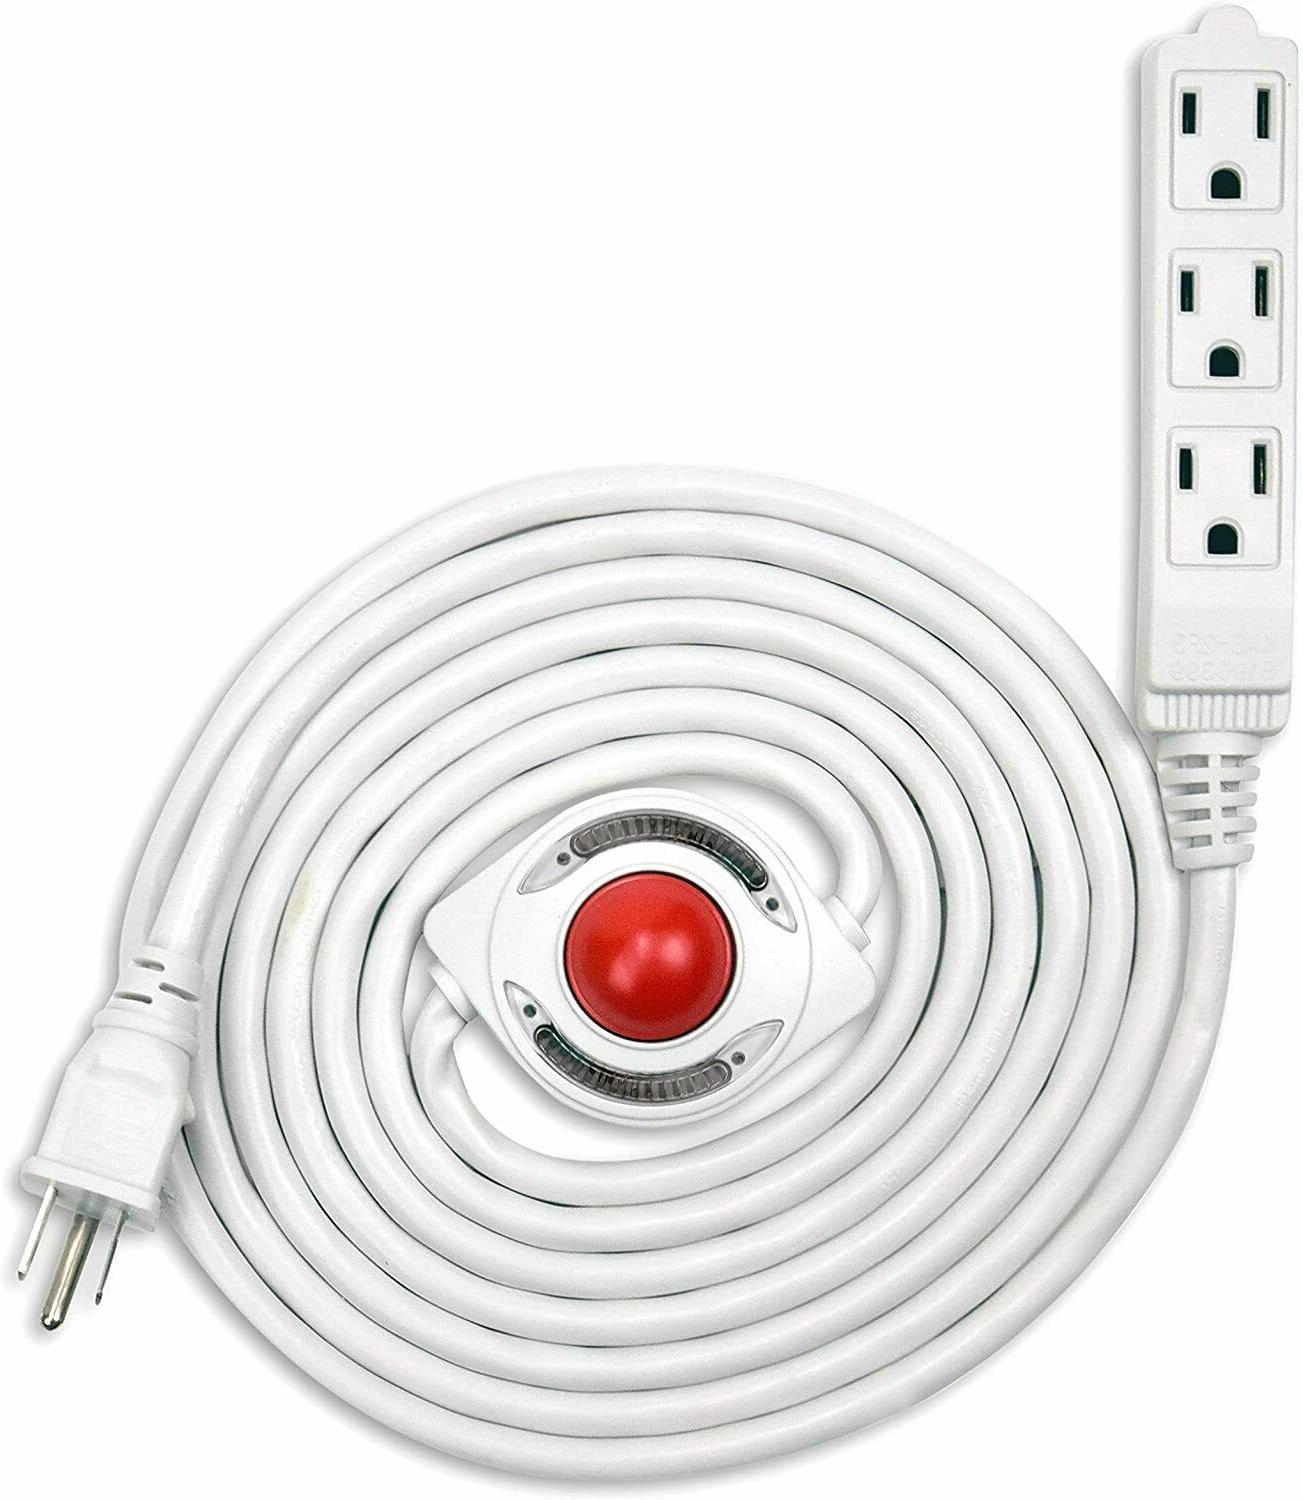 15 feet 3 grounded outlets extension cord